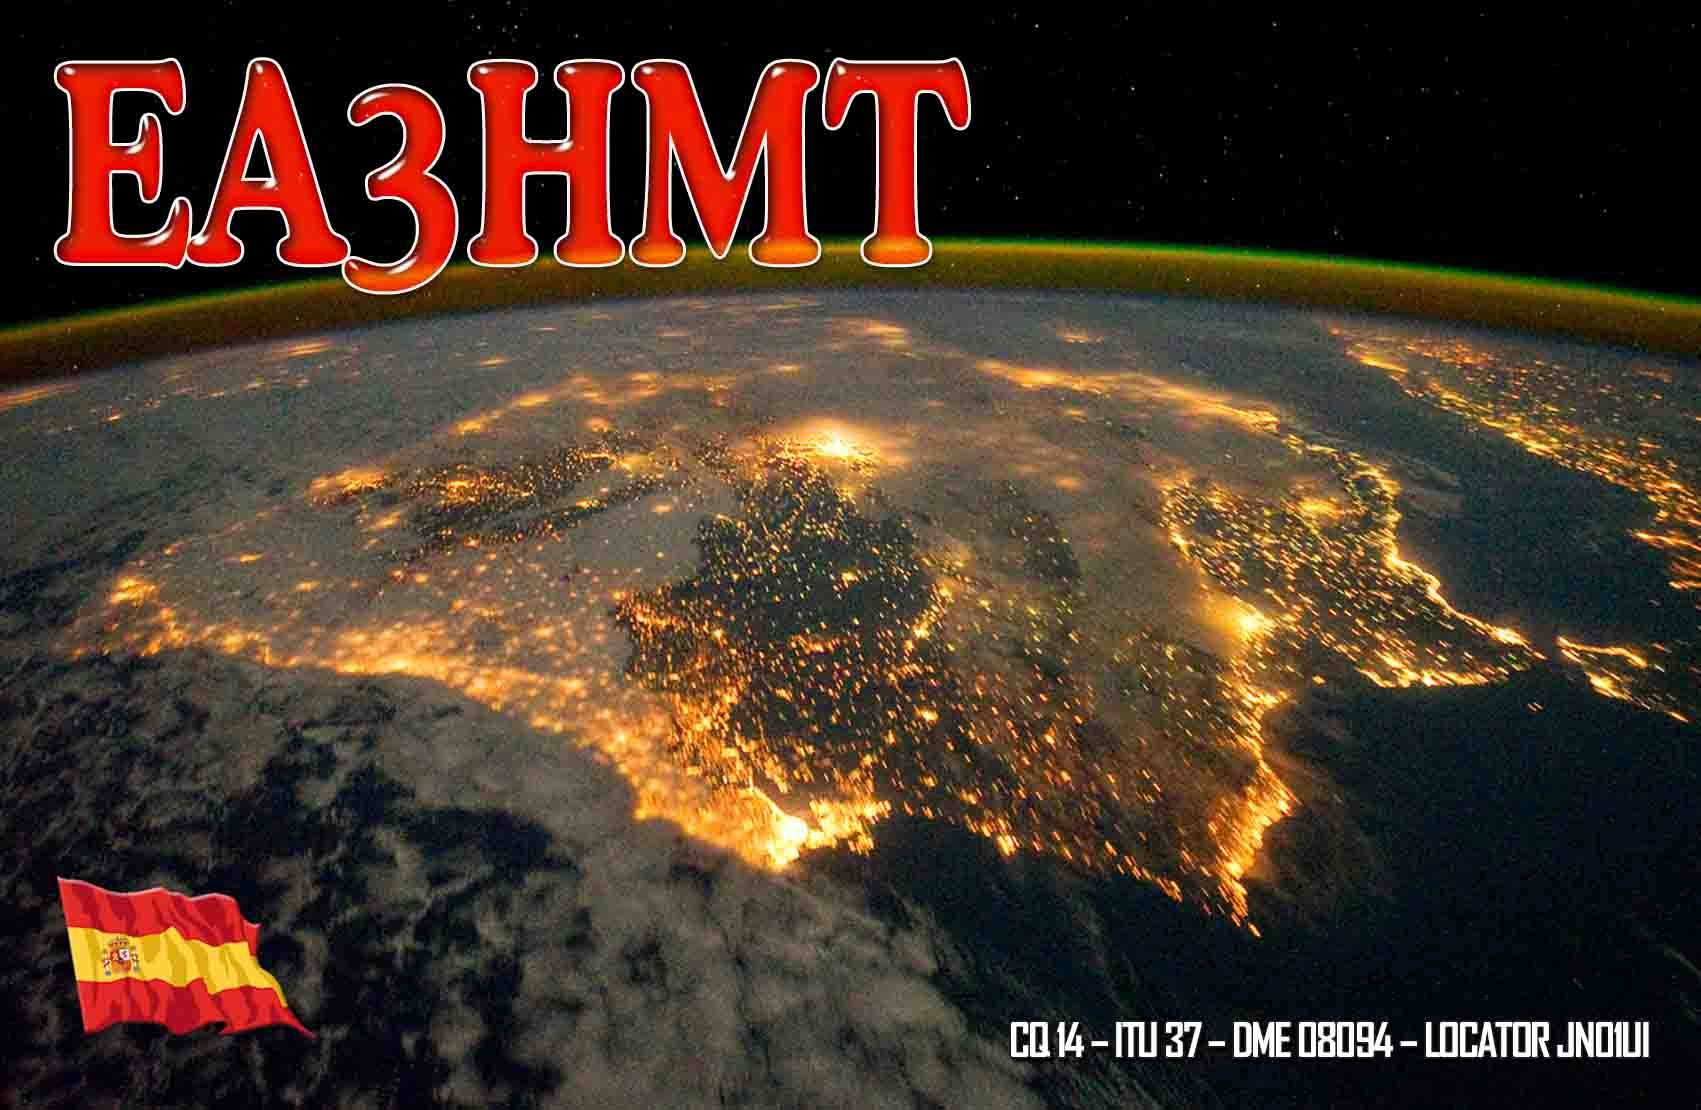 Primary Image for EA3HMT